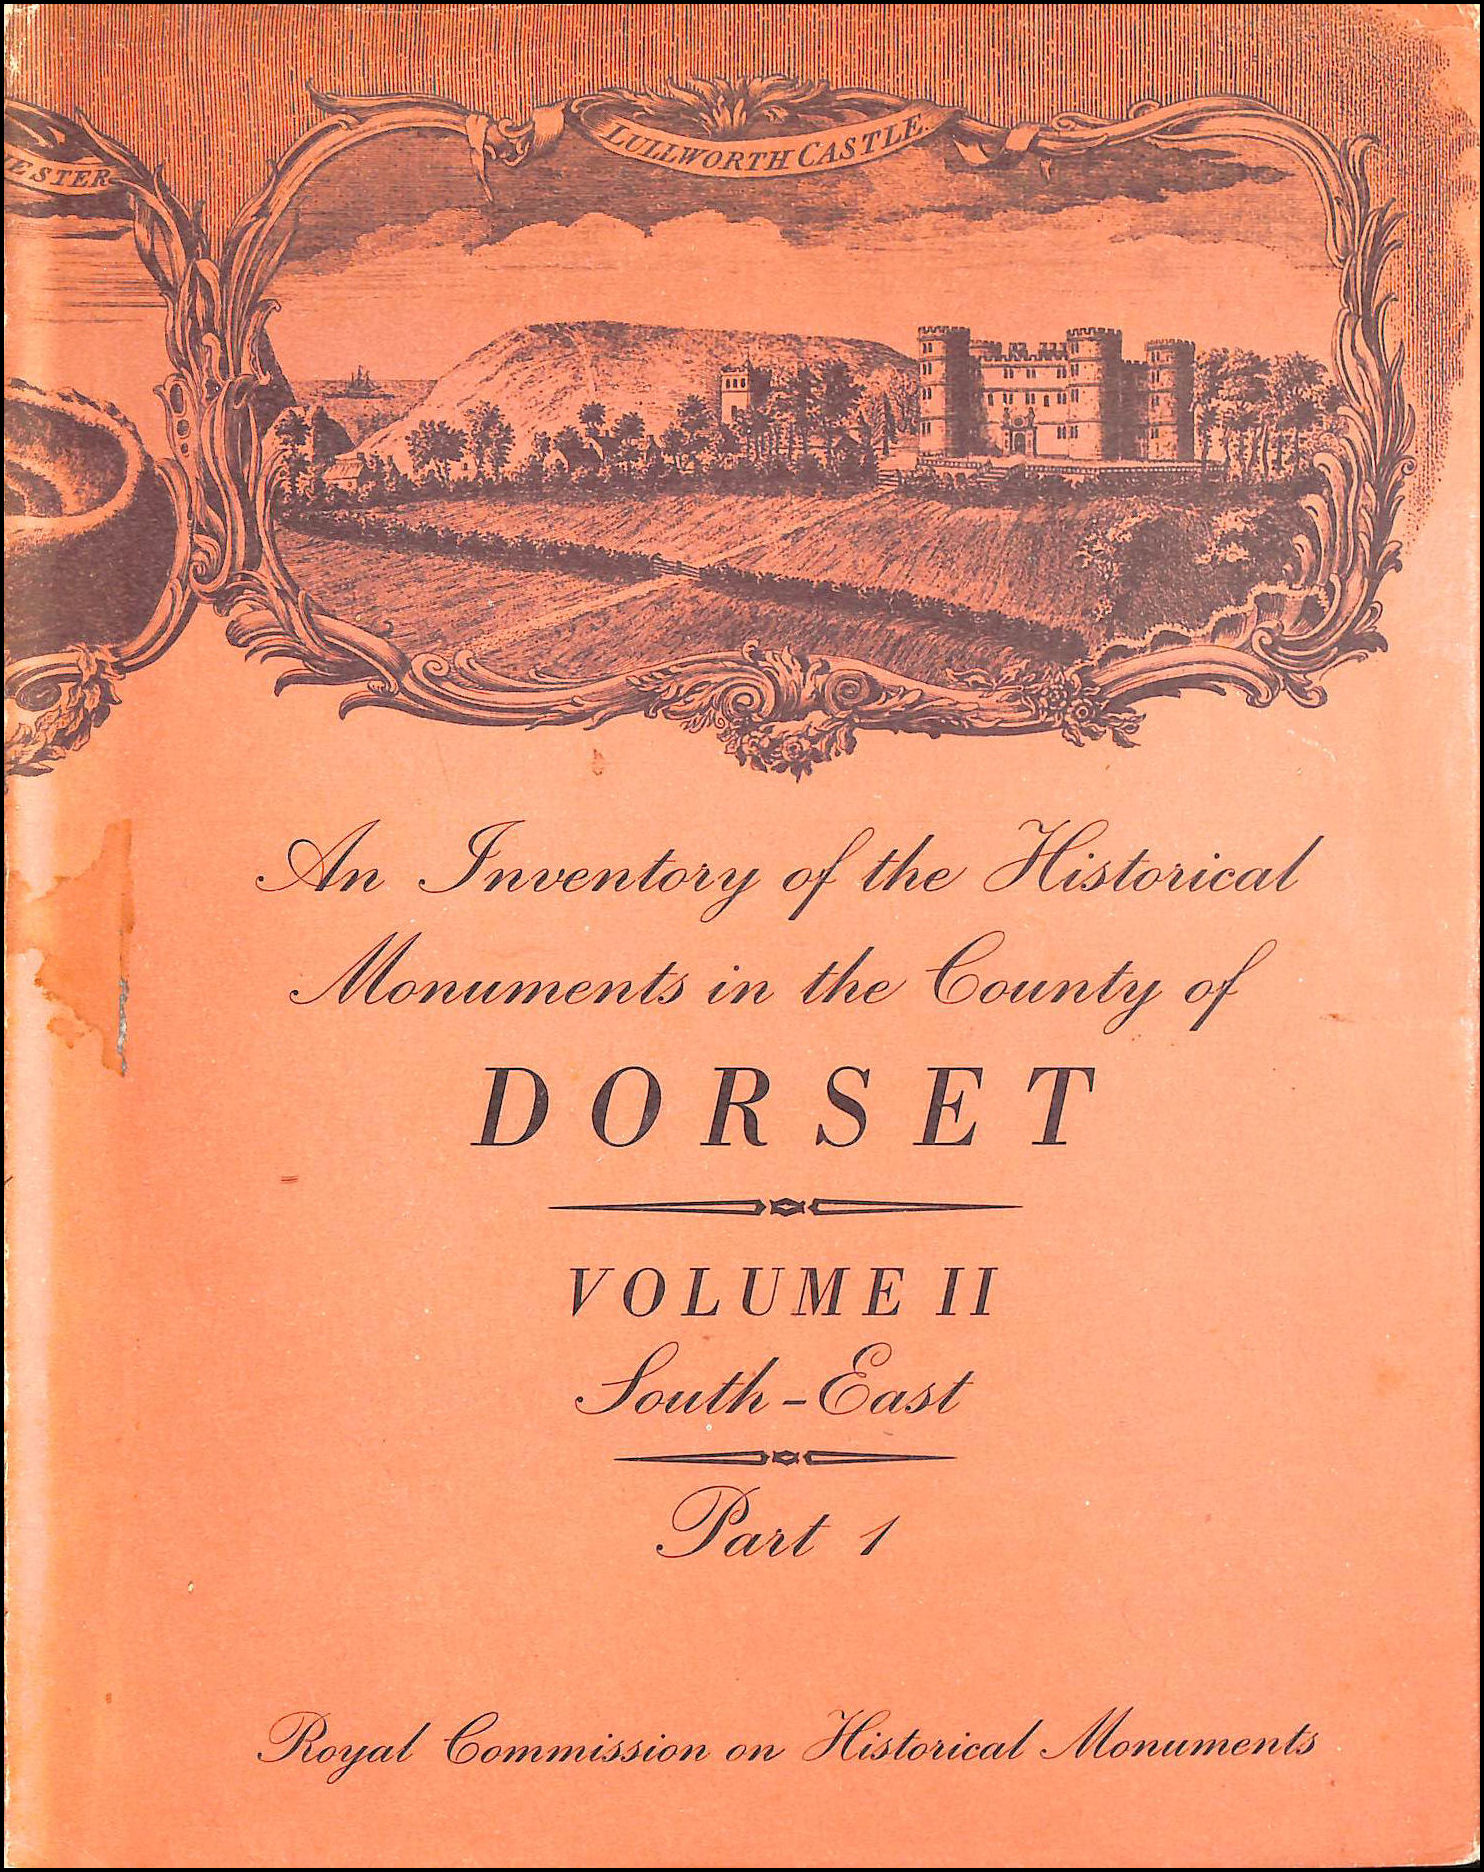 An Inventory of the Historical Monuments in the County of Dorset; Volume II, South-East, Part 1, Royal Commission on Historical Monuments